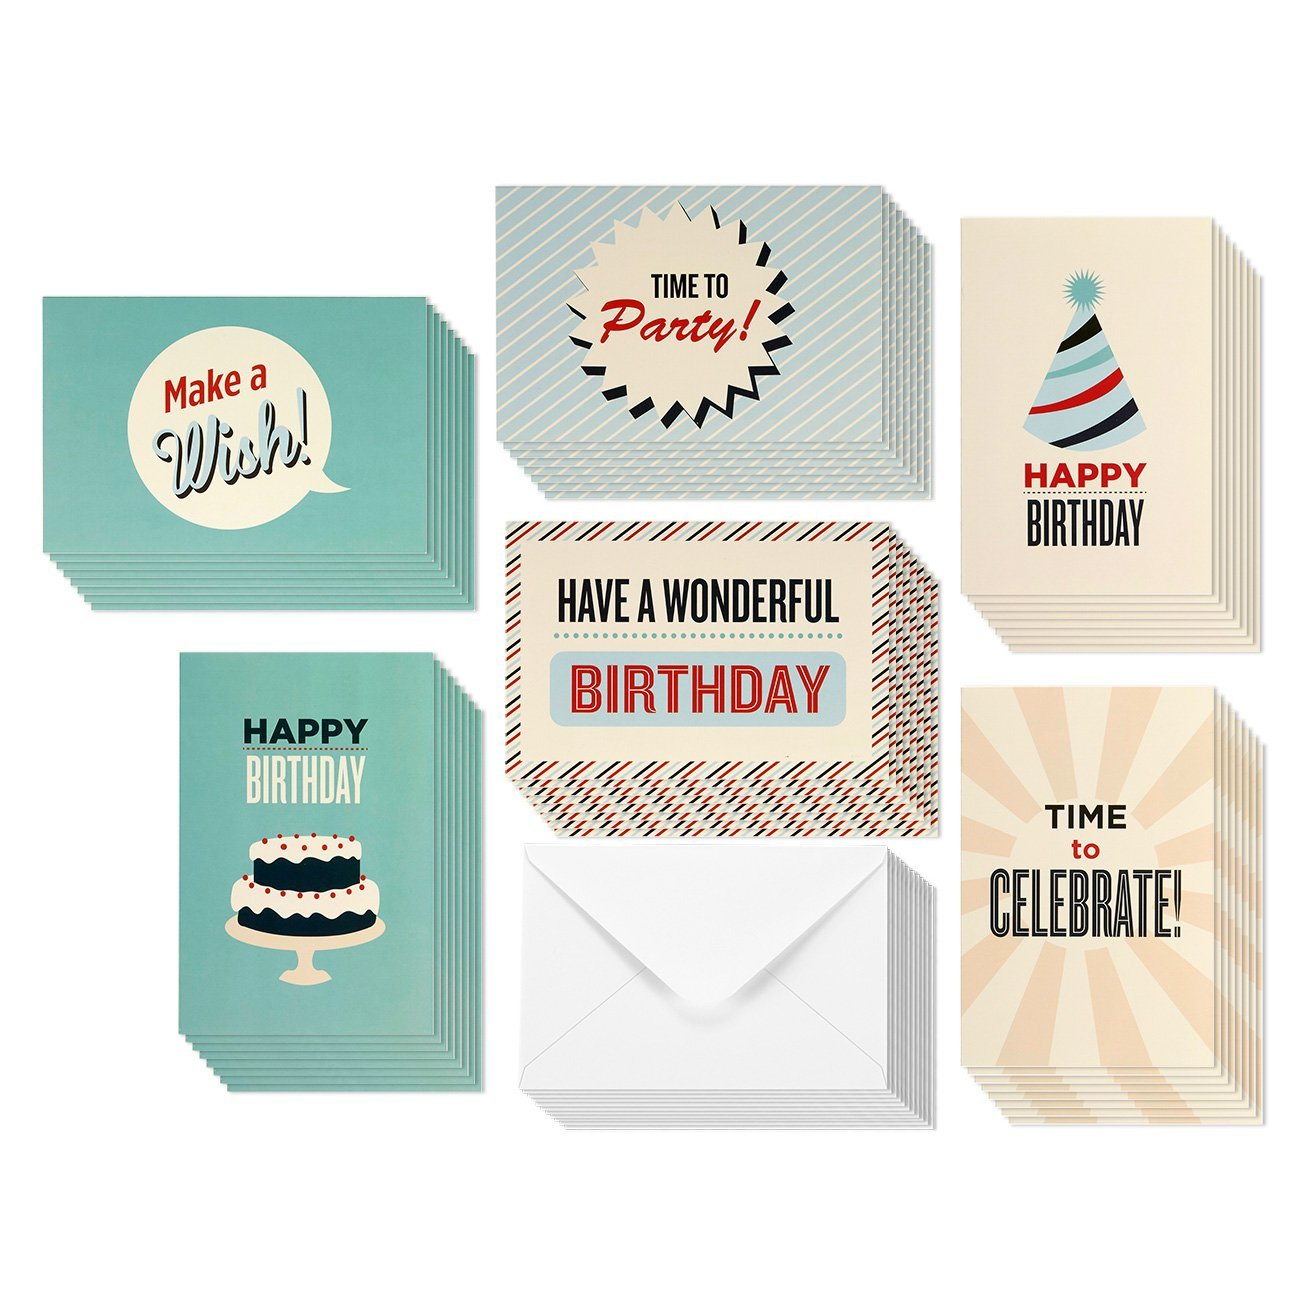 48 Pack Happy Birthday Greeting Cards 6 Vintage Retro Cake Party Hat Designs Bulk Box Set Variety Assortment Envelopes Included 4 X Inches